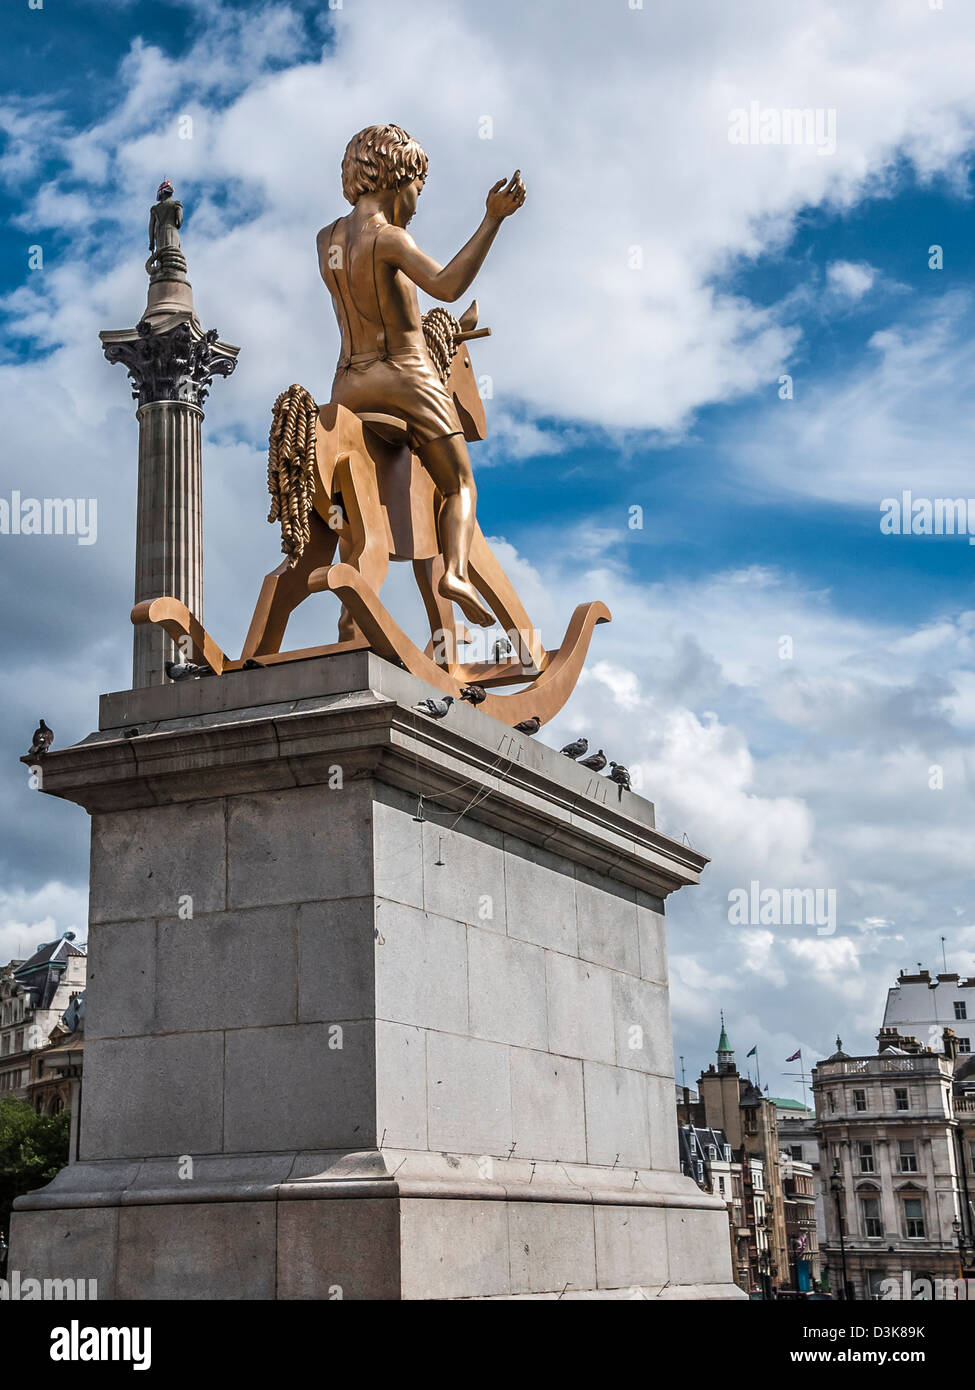 Powerless Structures, Fig. 101, Fourth Plinth, Trafalgar Square - Stock Image